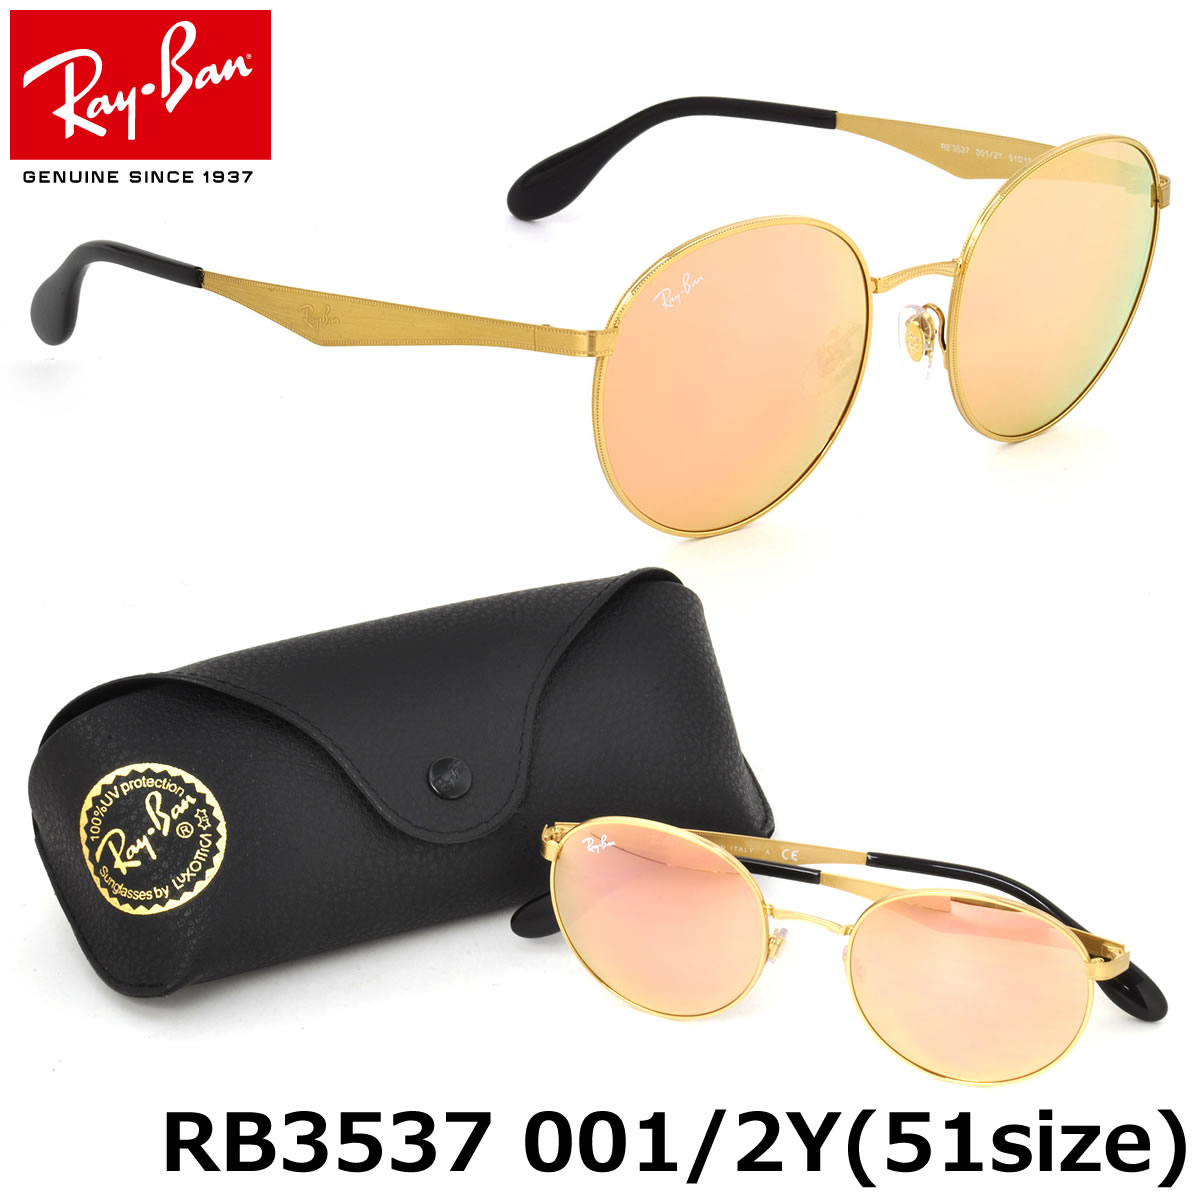 f6a8123bcf The model of the European variety with a delicate pattern. It is an  exquisite design with a classic Boston shape fits European. Ray-ban logo of  the slightly ...